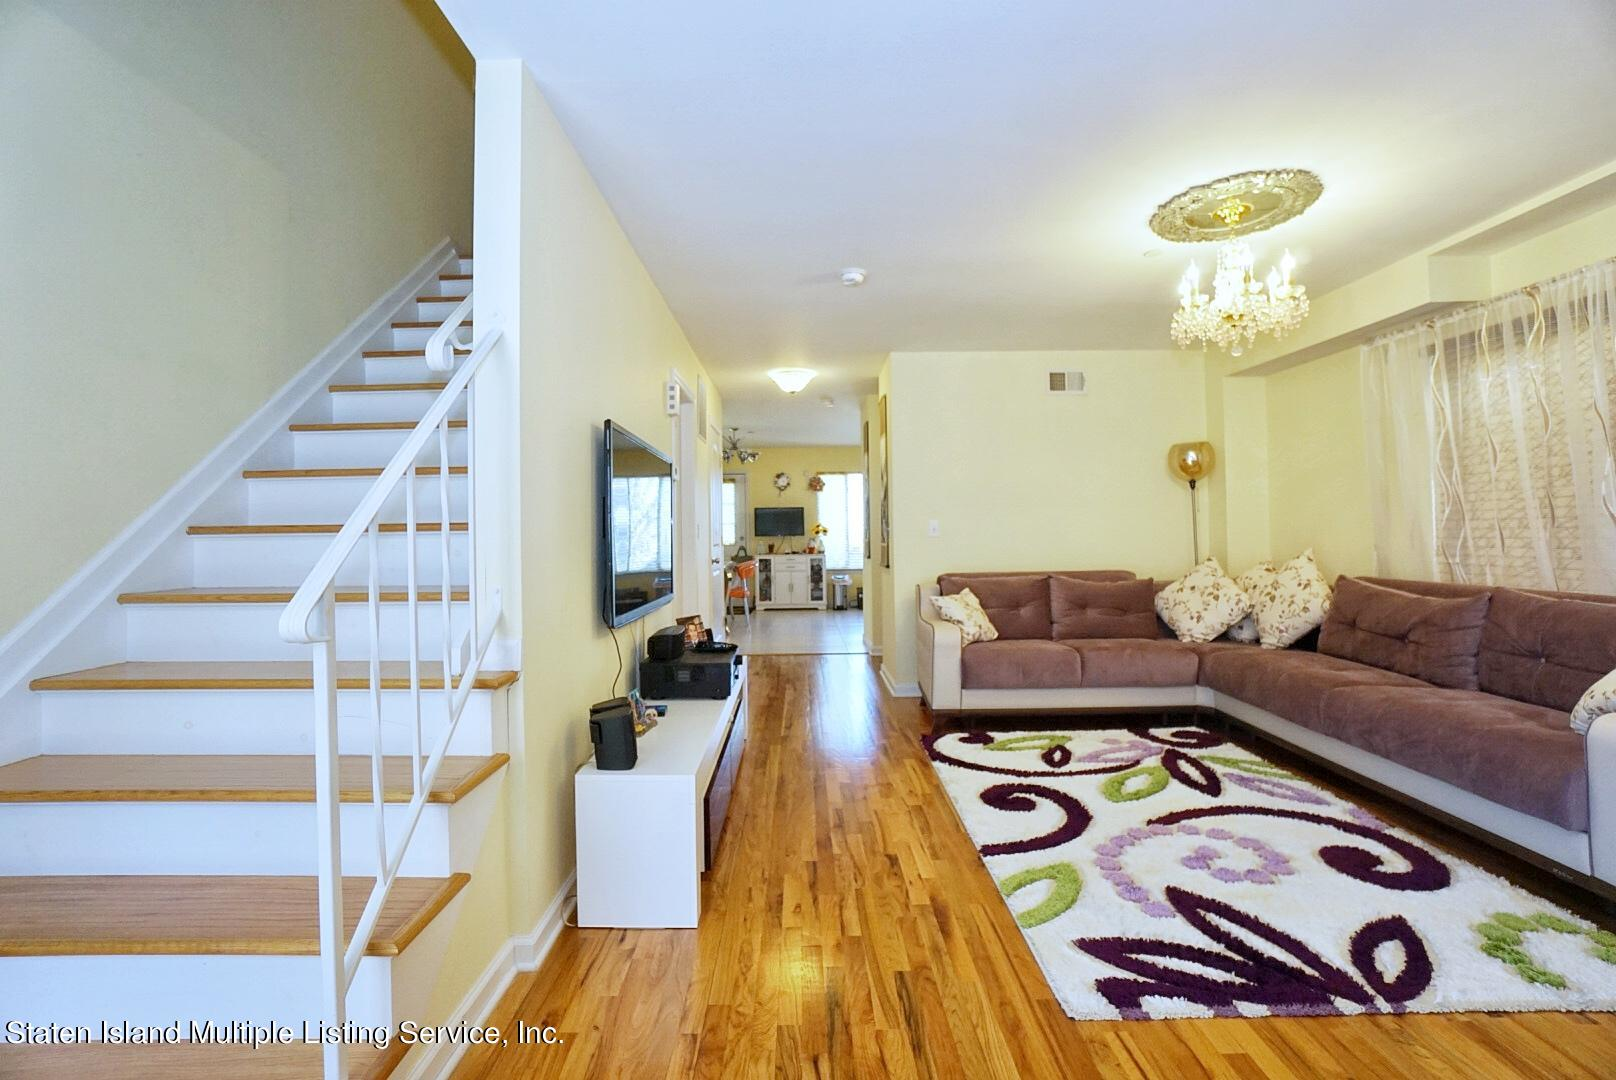 Single Family - Detached 171 Benziger Avenue  Staten Island, NY 10301, MLS-1145235-4